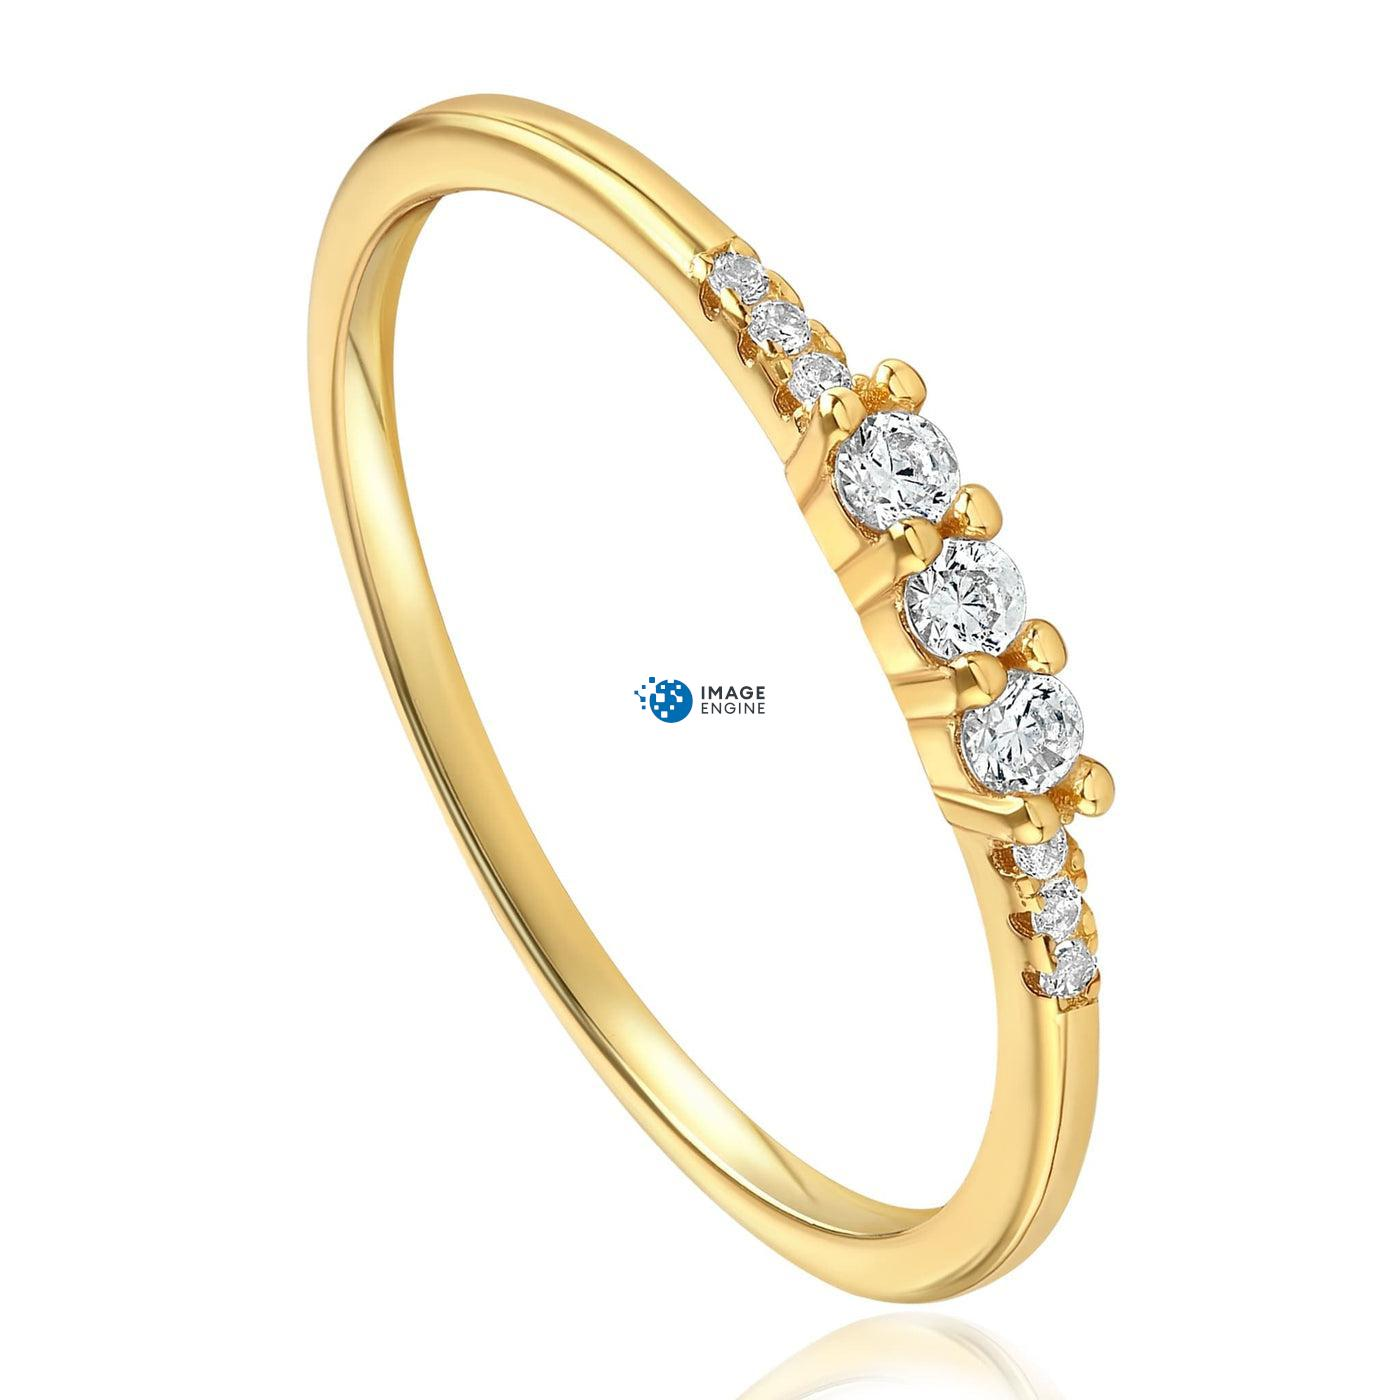 Emie Ring - Three Quarter View - 18K Yellow Gold Vermeil